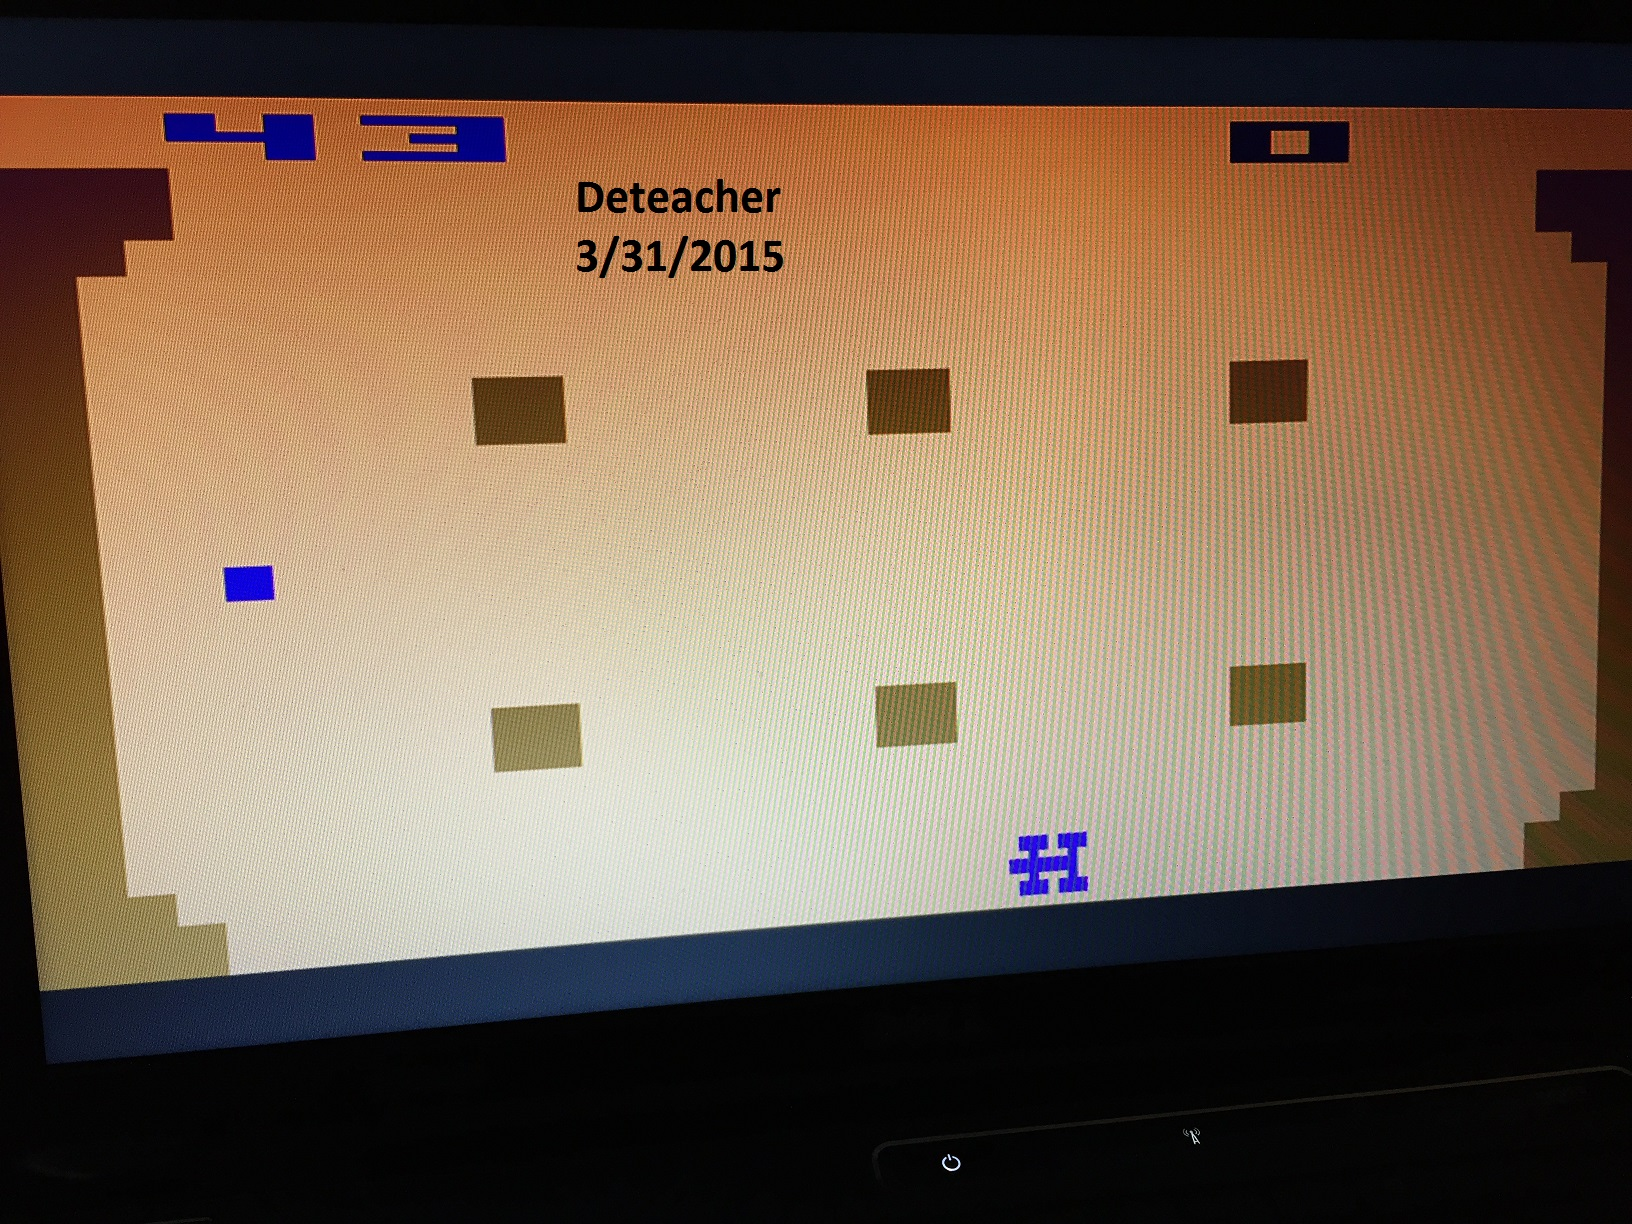 Deteacher: Indy 500: Game 8 (Atari 2600 Emulated Novice/B Mode) 43 points on 2015-03-31 21:17:47